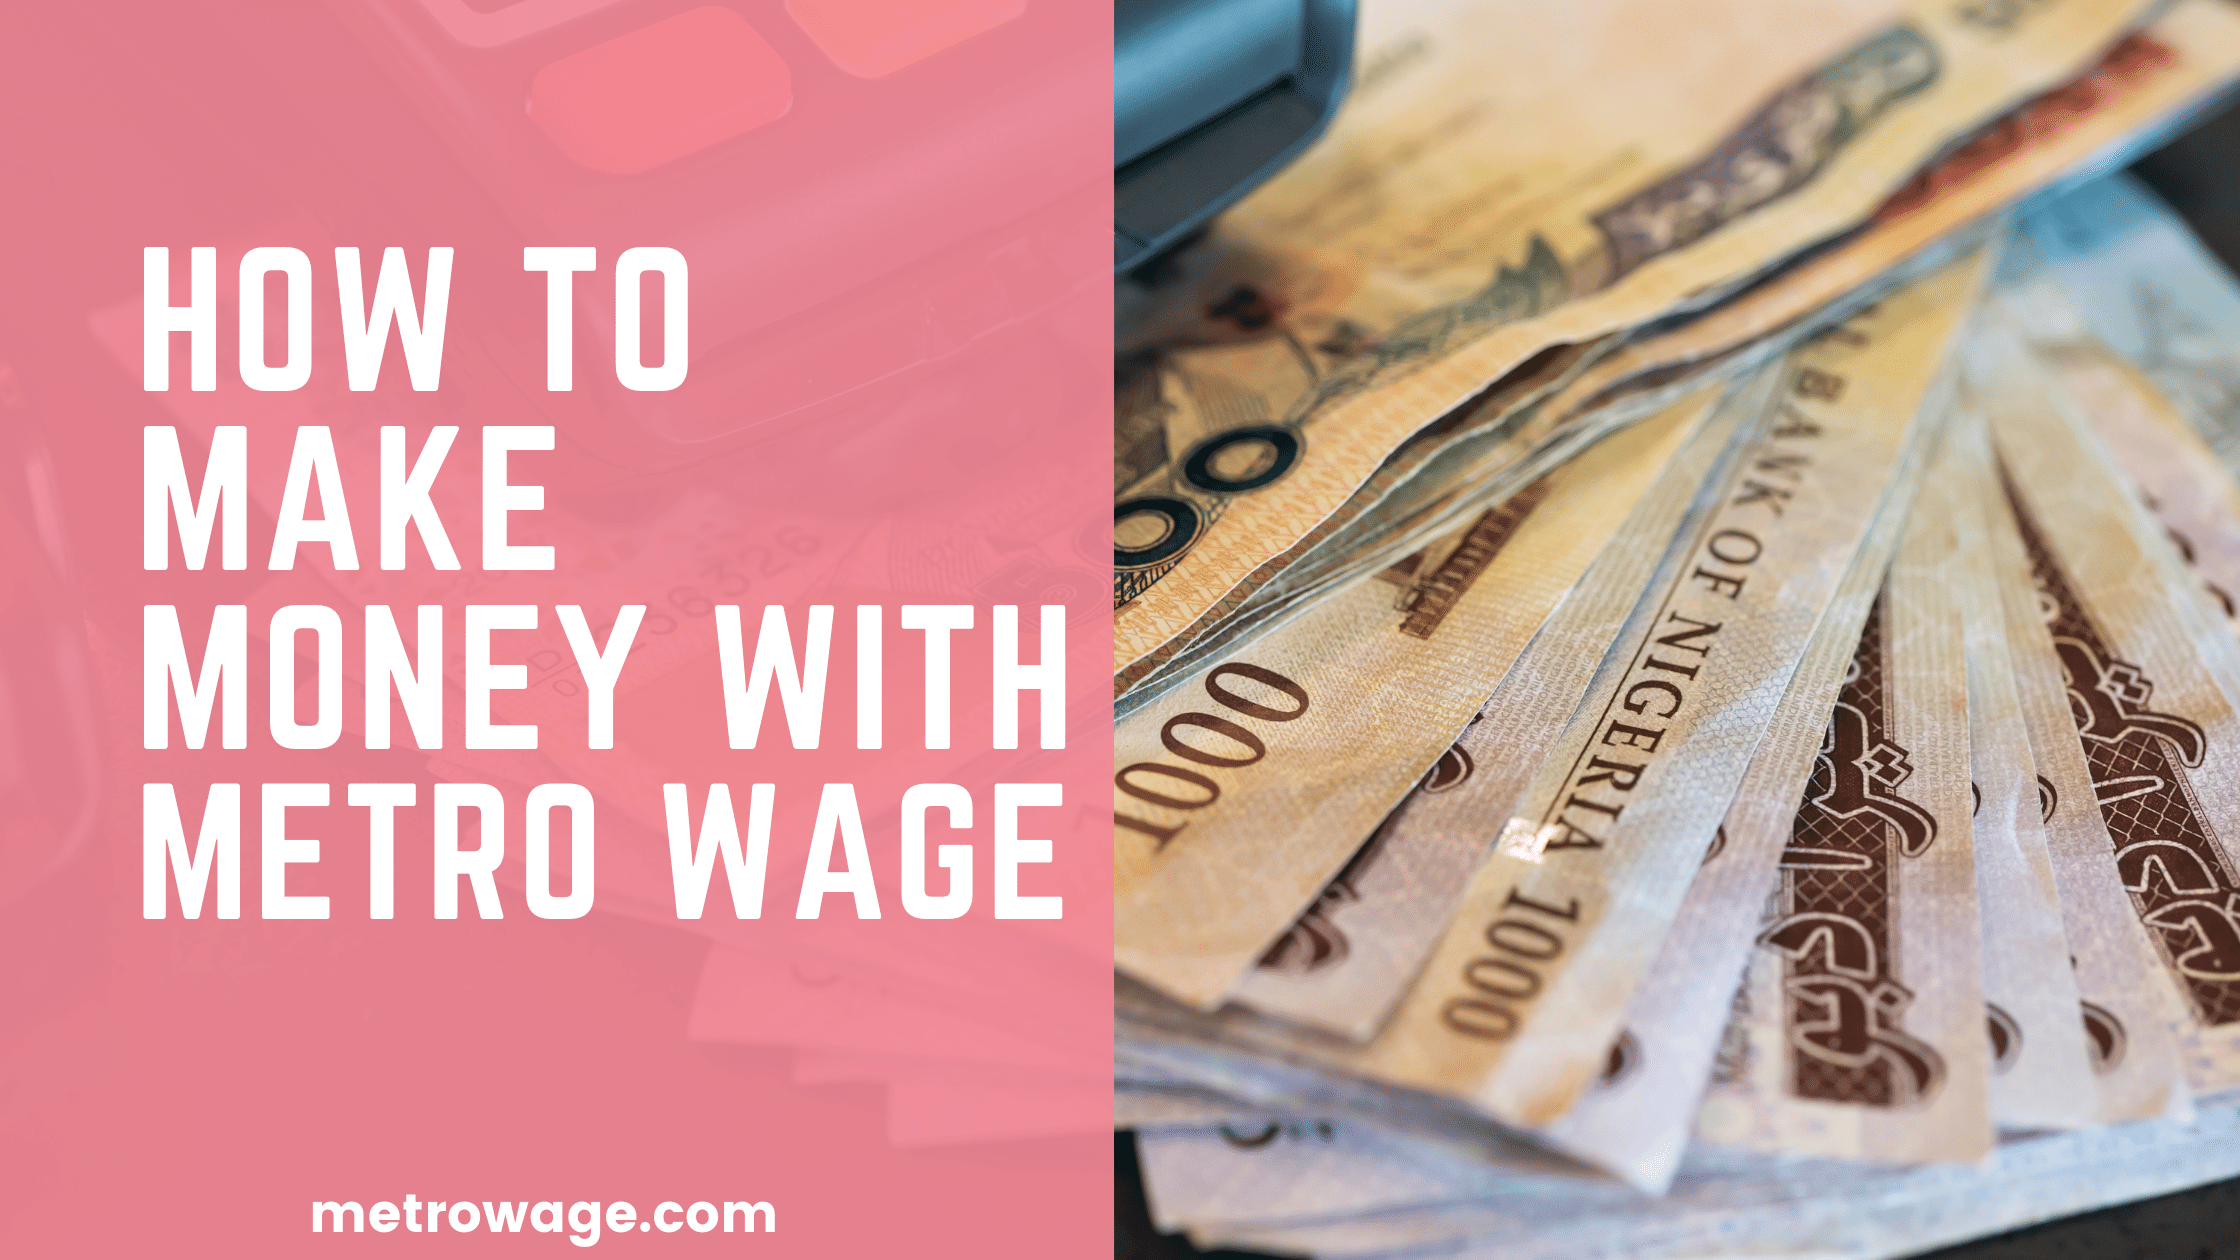 How To Make Money With Metro Wage